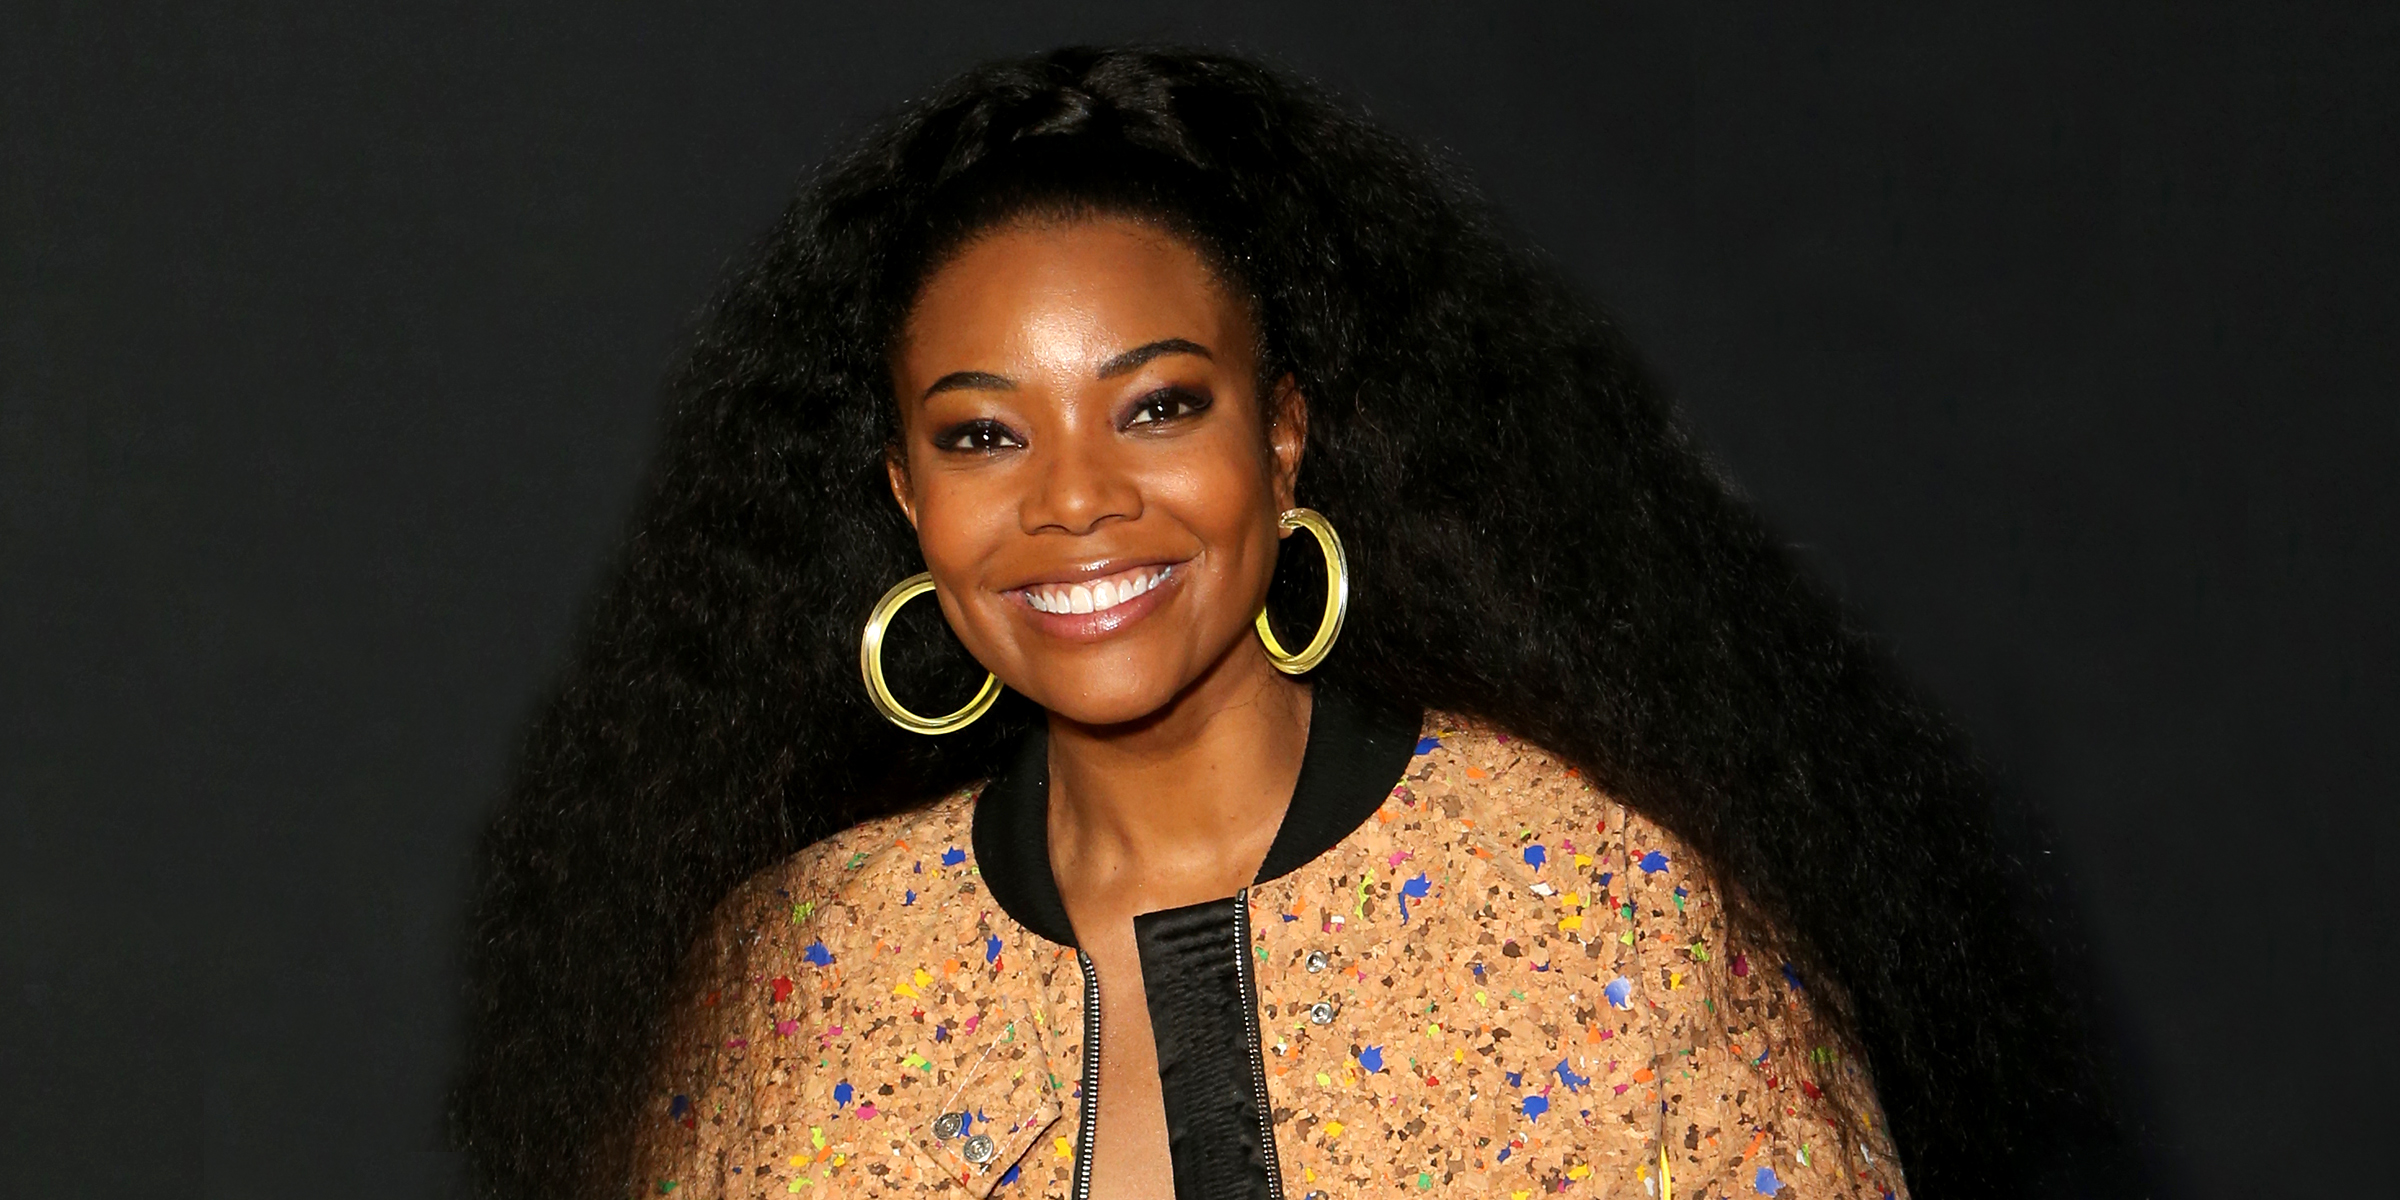 Gabrielle Union S Hair Is Short And Stylish With New Haircut